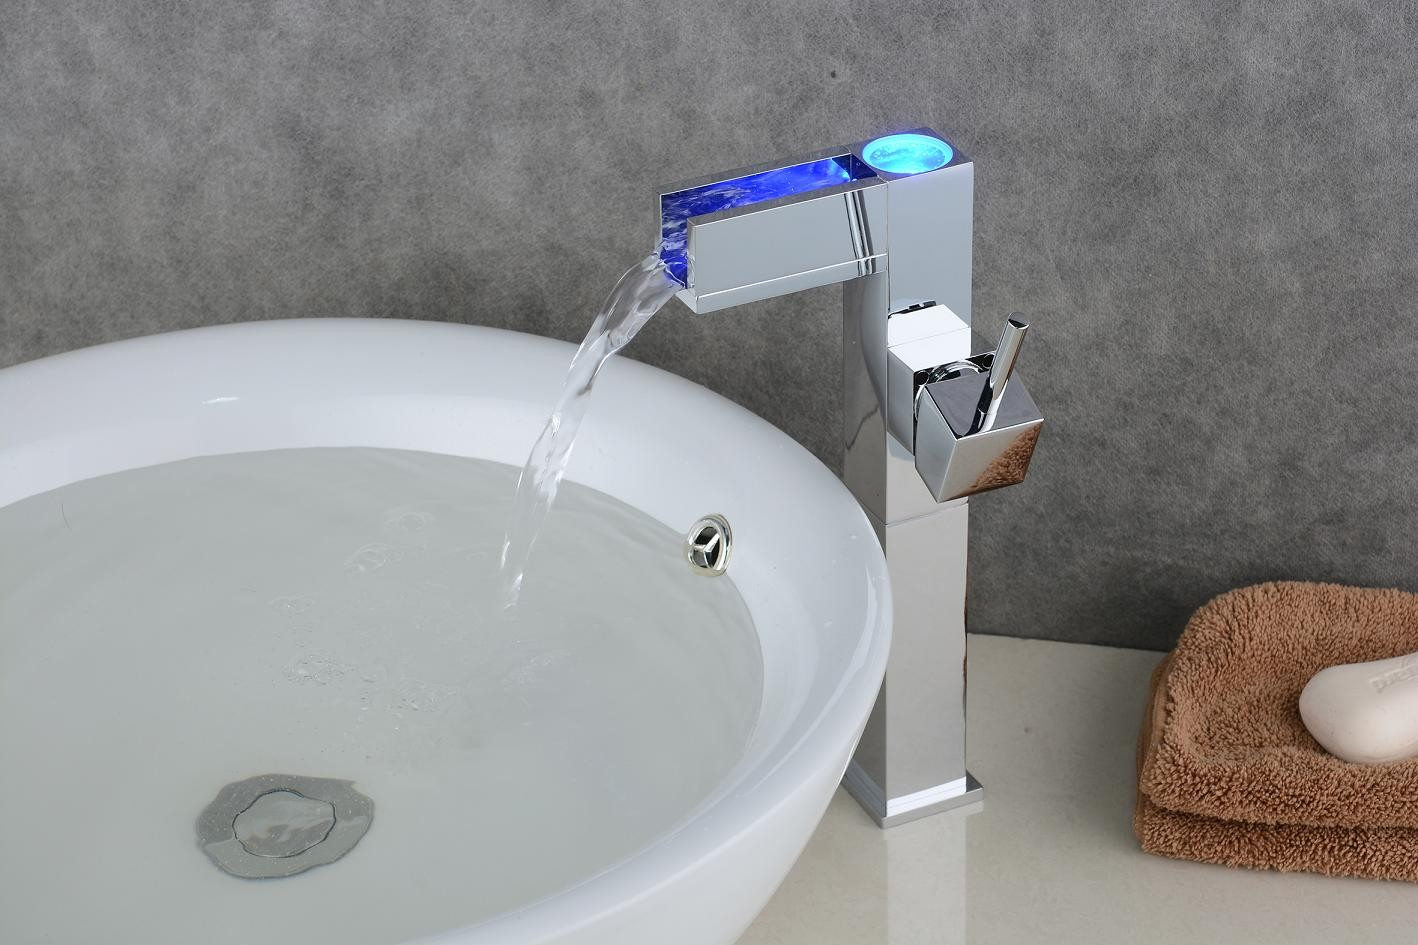 Bathroom Sink Faucet With Color Changing LED Waterfall Faucet Tall - Discount bathroom sink faucets